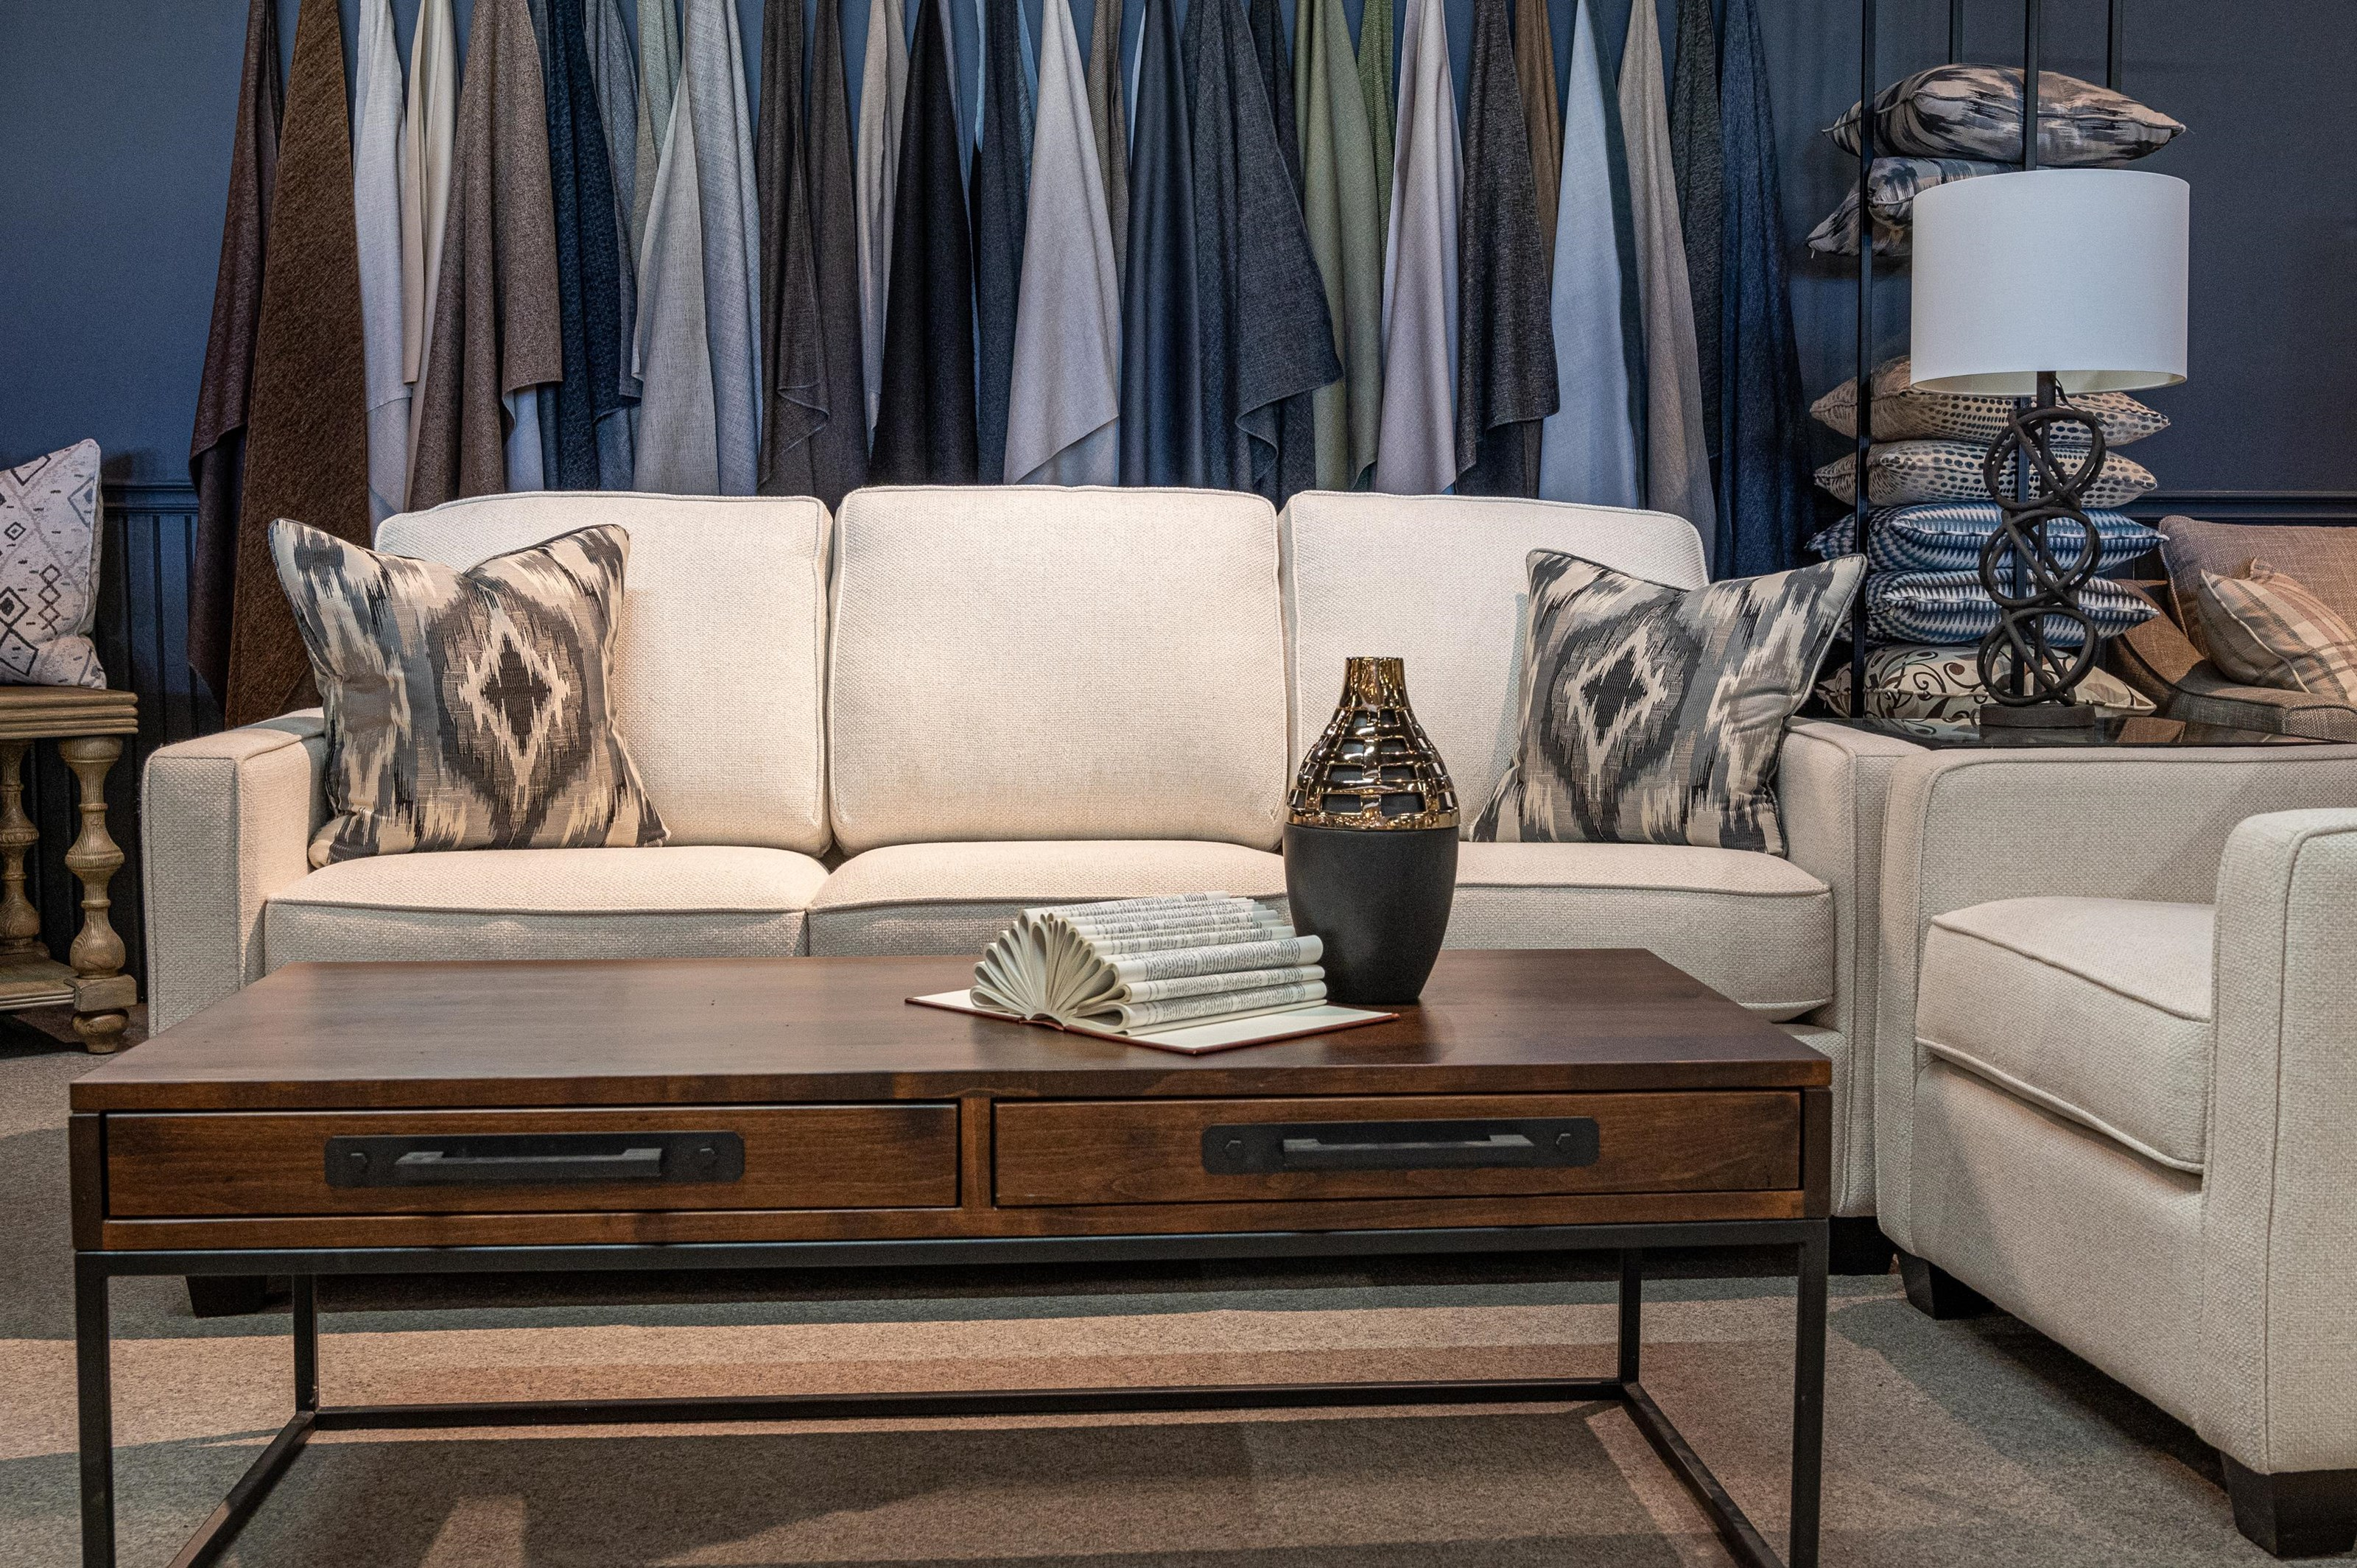 2855 Stationary sofa by Decor-Rest at Stoney Creek Furniture